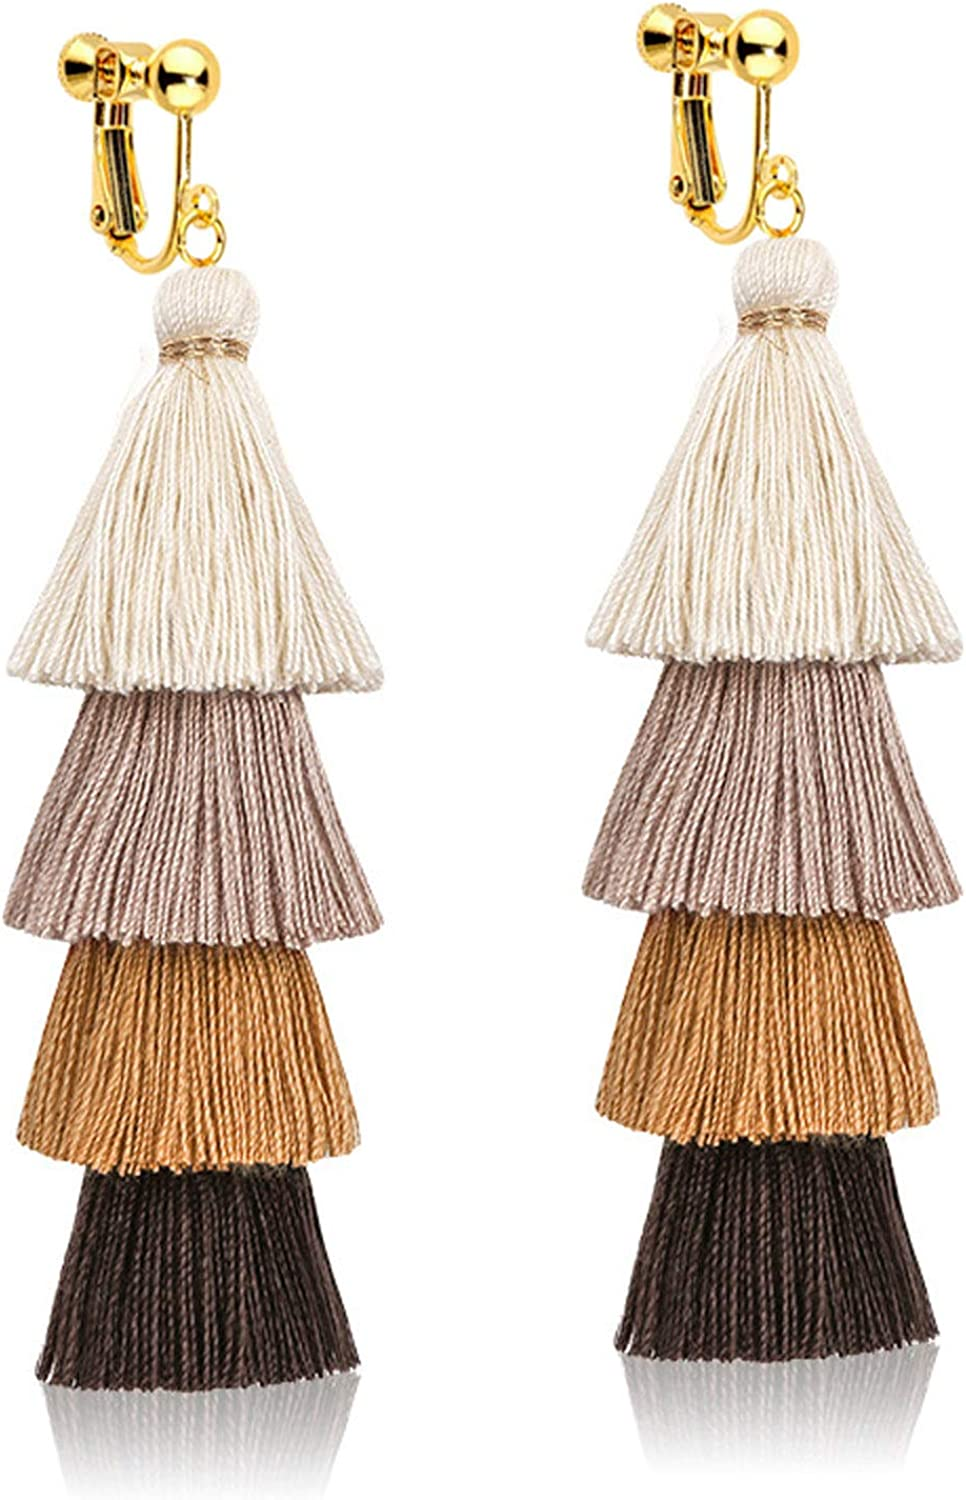 Dealing full price reduction 4 Tiered Tassel Long Clip on Back for Girls Earrings Screw Women ! Super beauty product restock quality top!